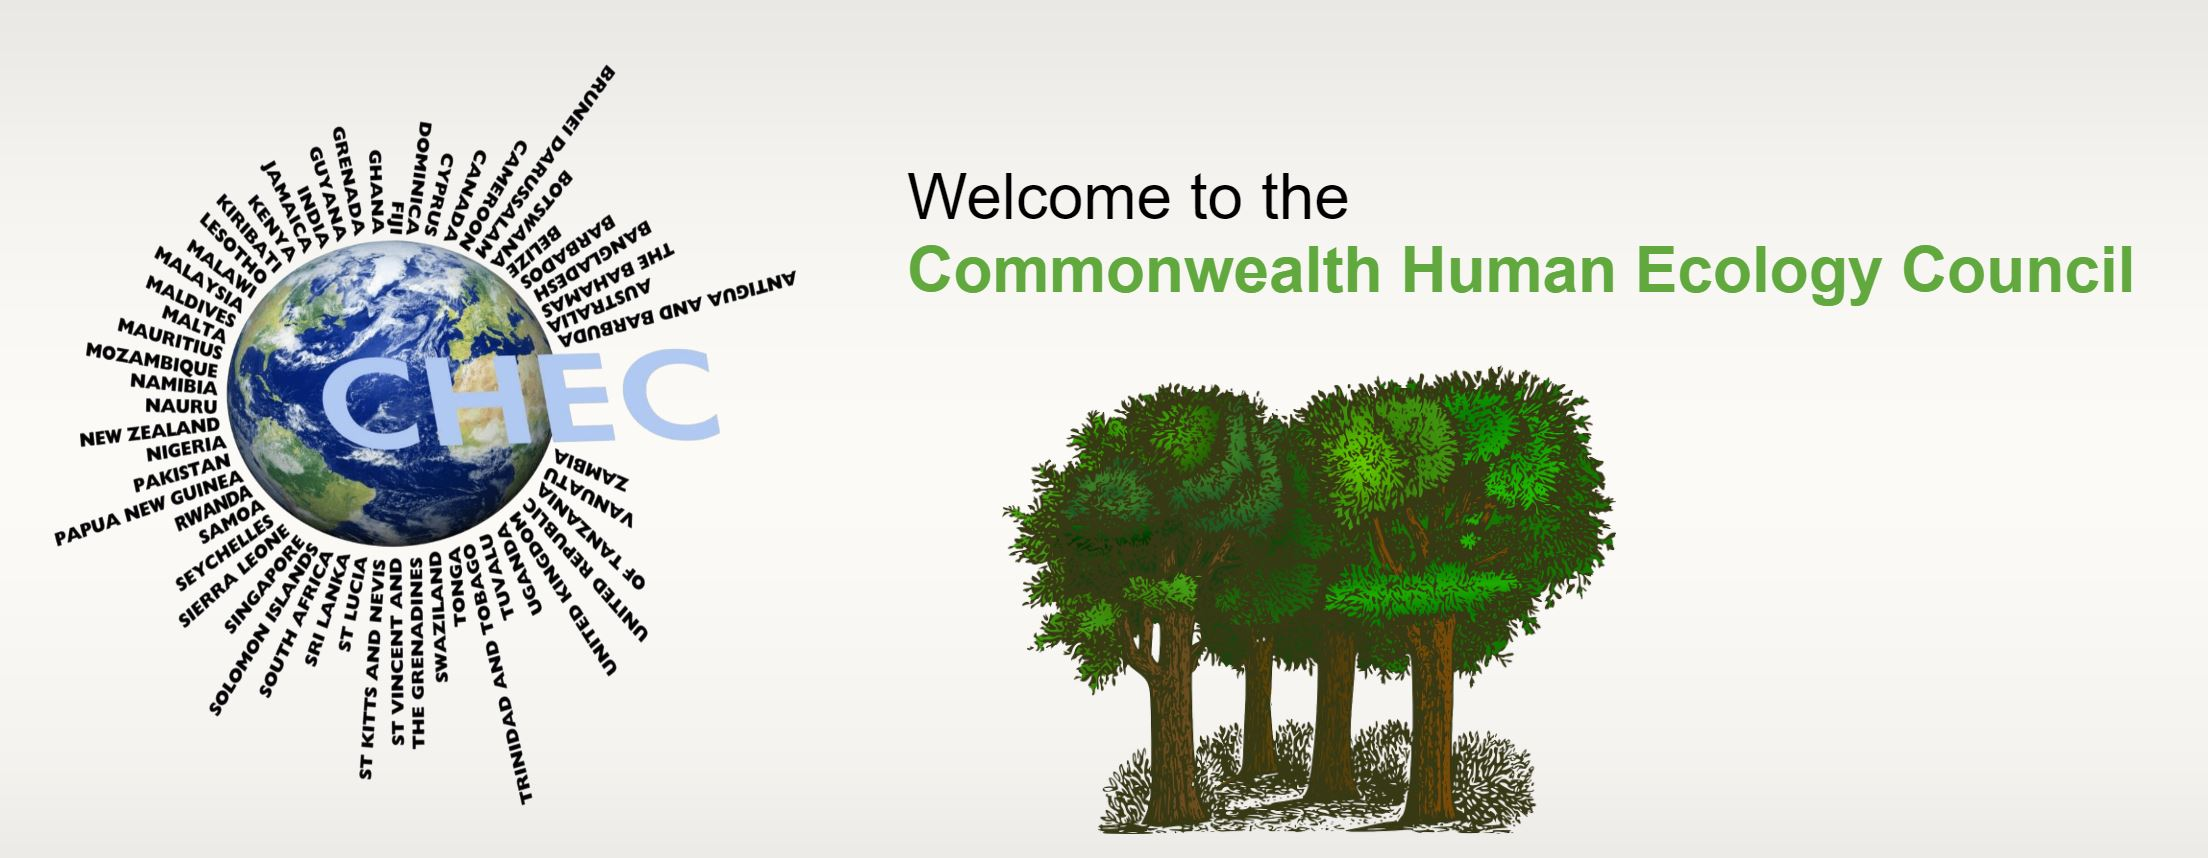 Welcome to the Commonwealth Human Ecology Council Homepage